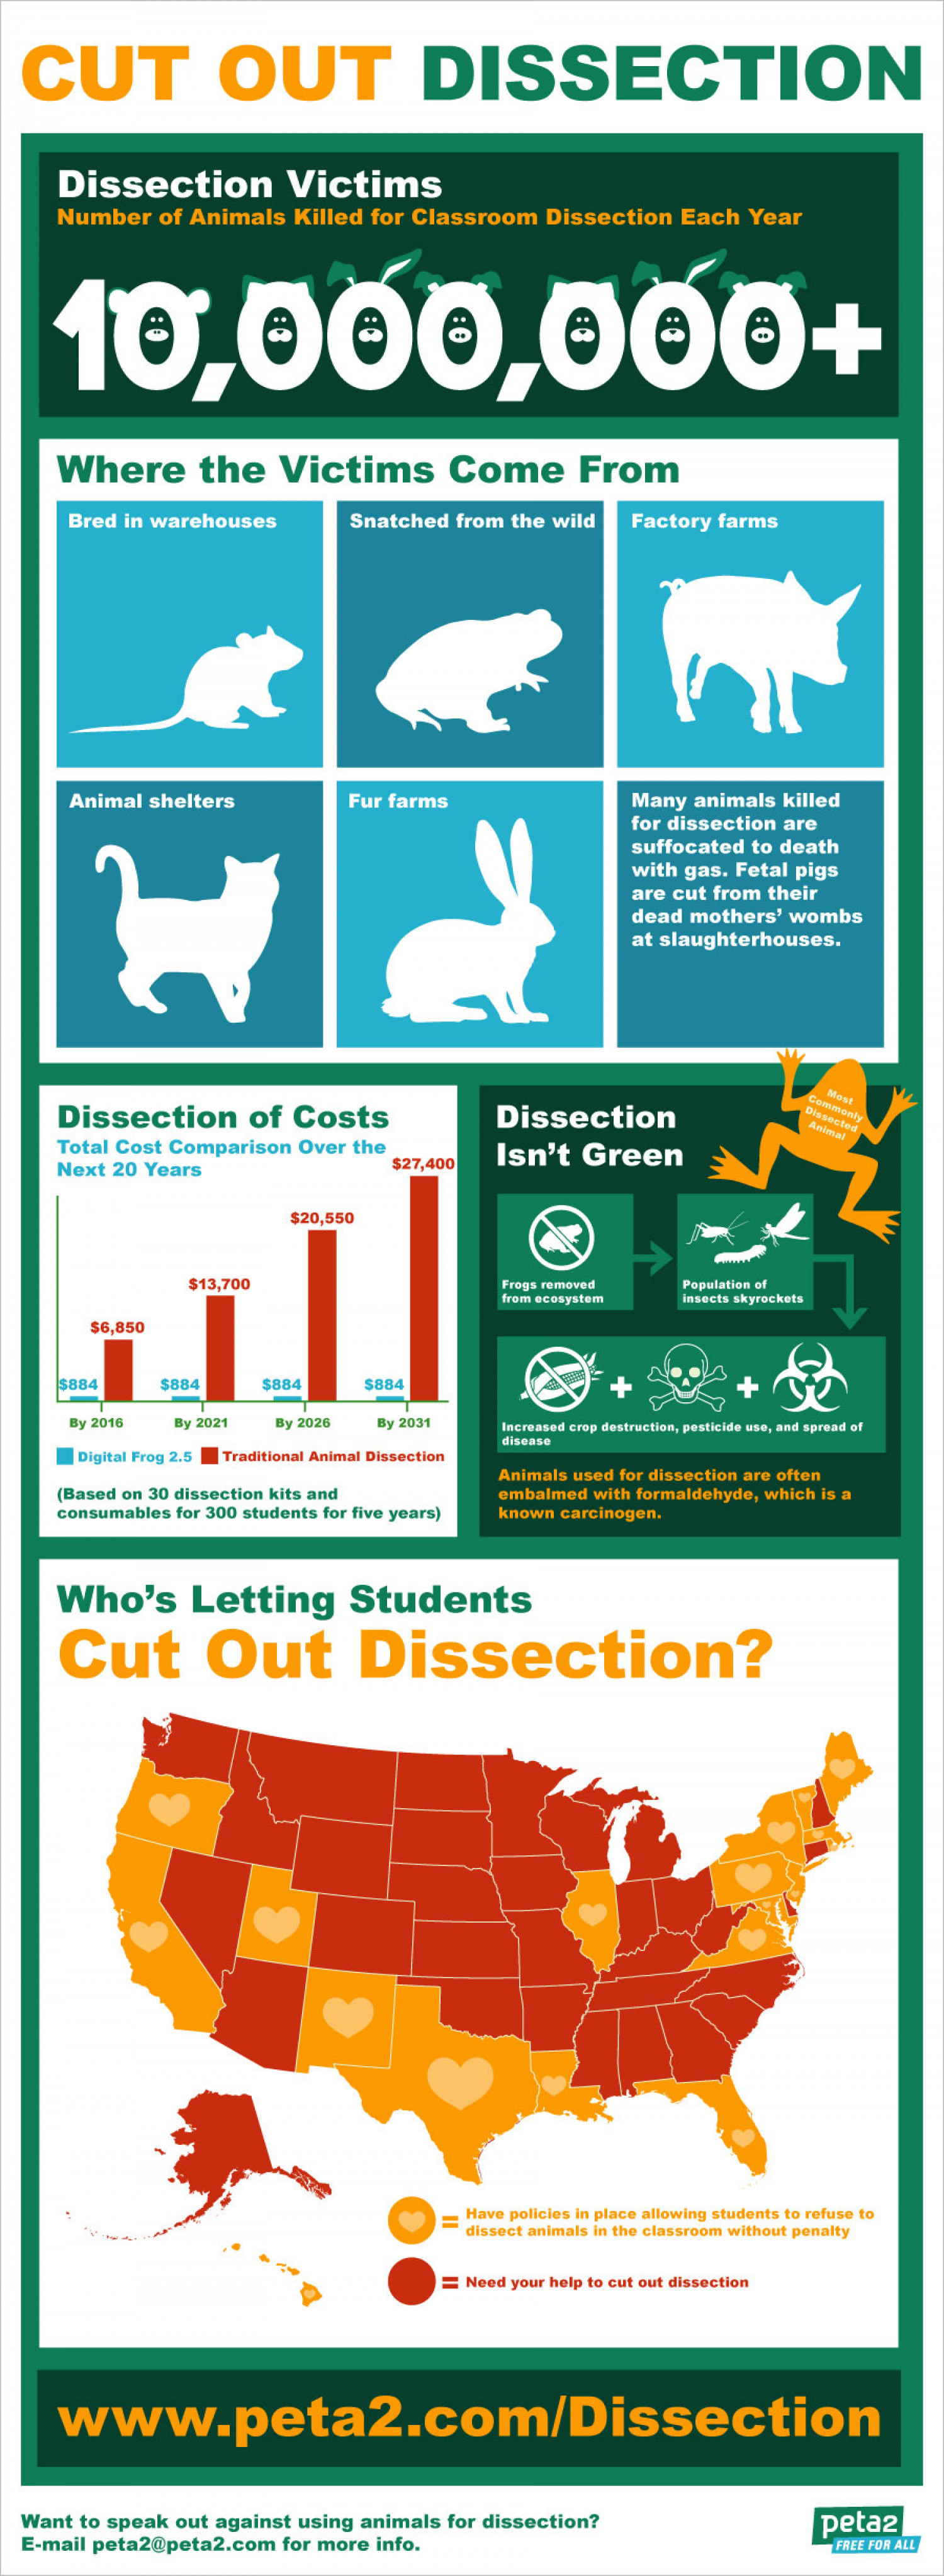 Cut Out Animal Dissection Infographic